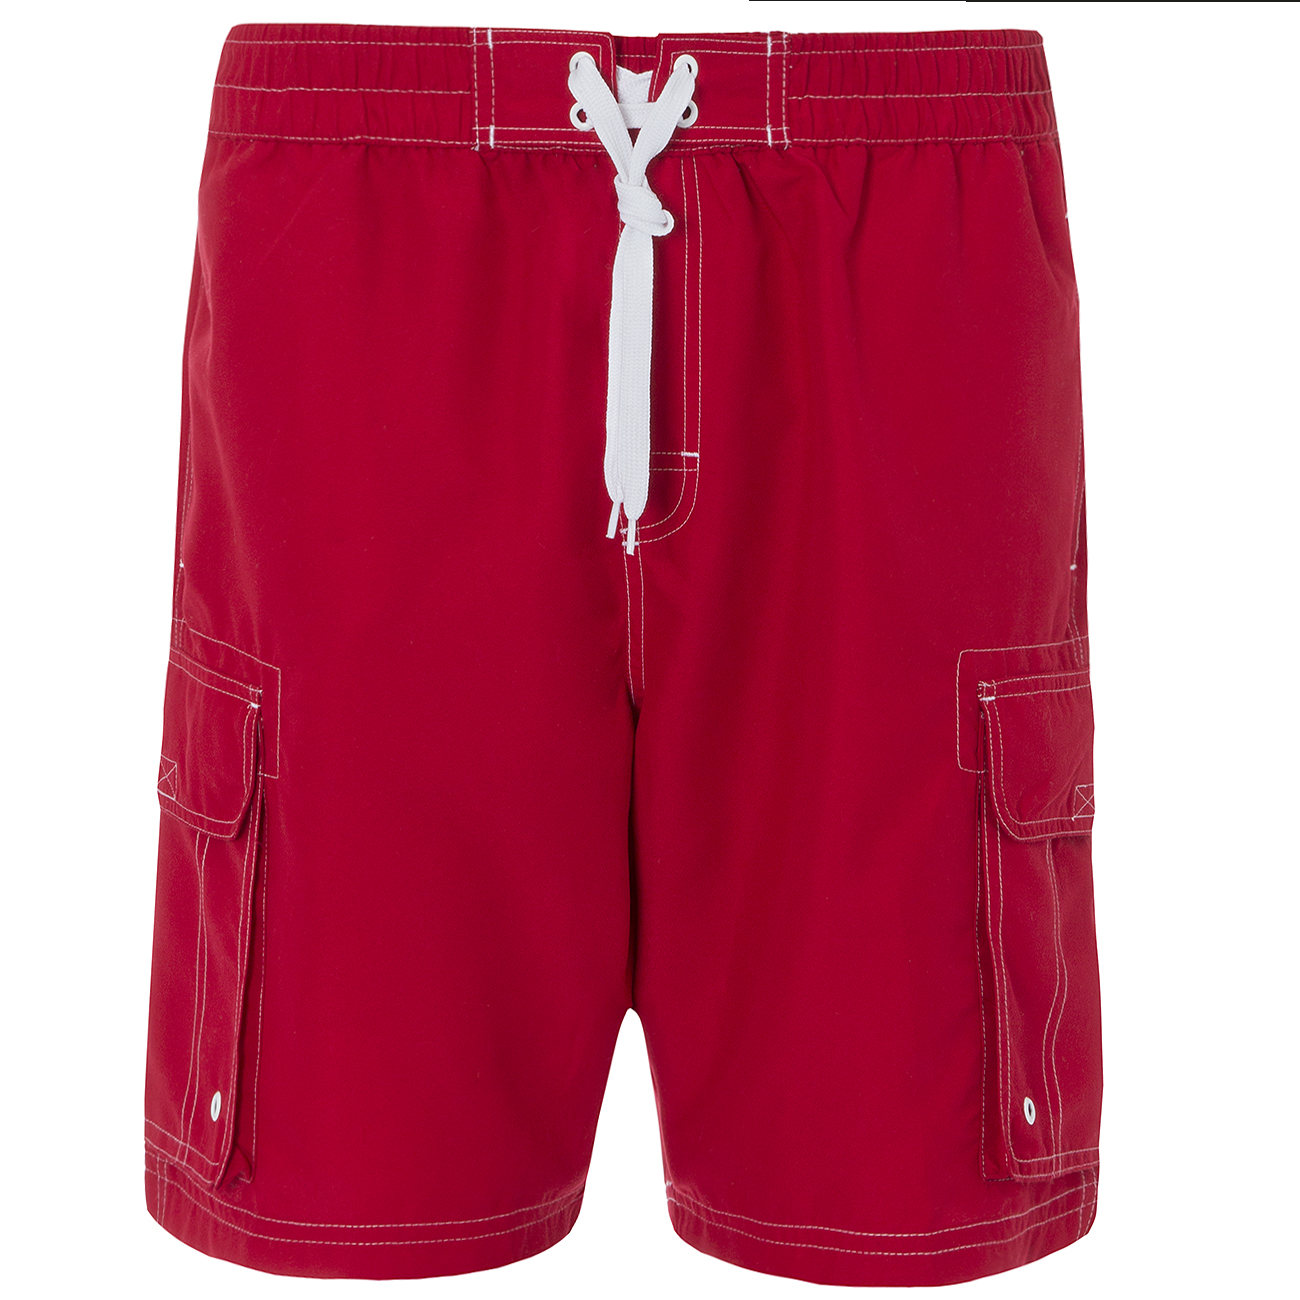 Mens Cargo Bay Plain Swim Shorts